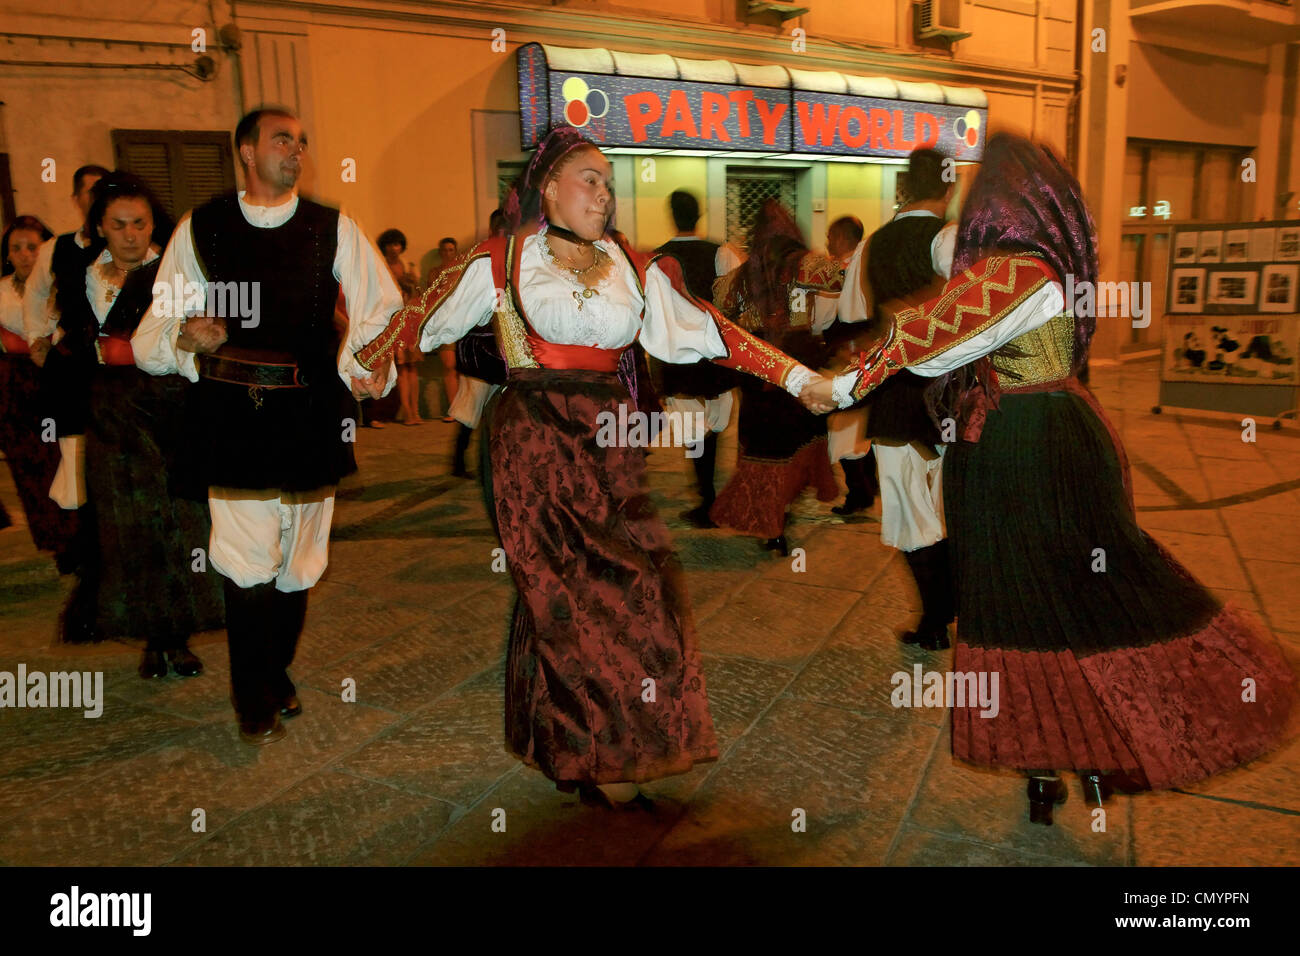 Italy Sardinia Olbia, dance performance with  traditional costumes Stock Photo